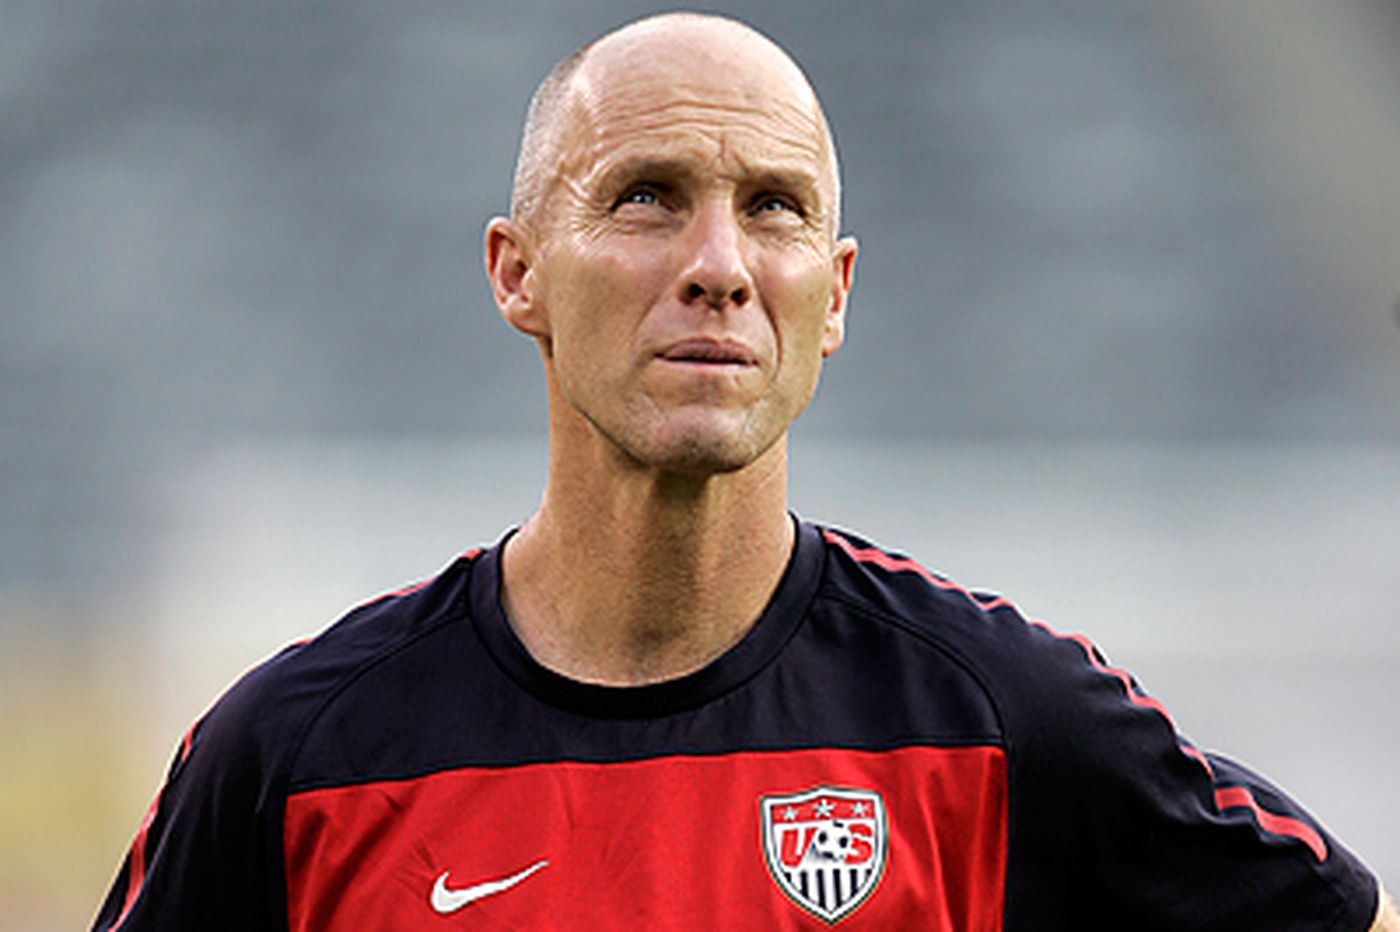 It was time for U.S. soccer coach Bradley to go